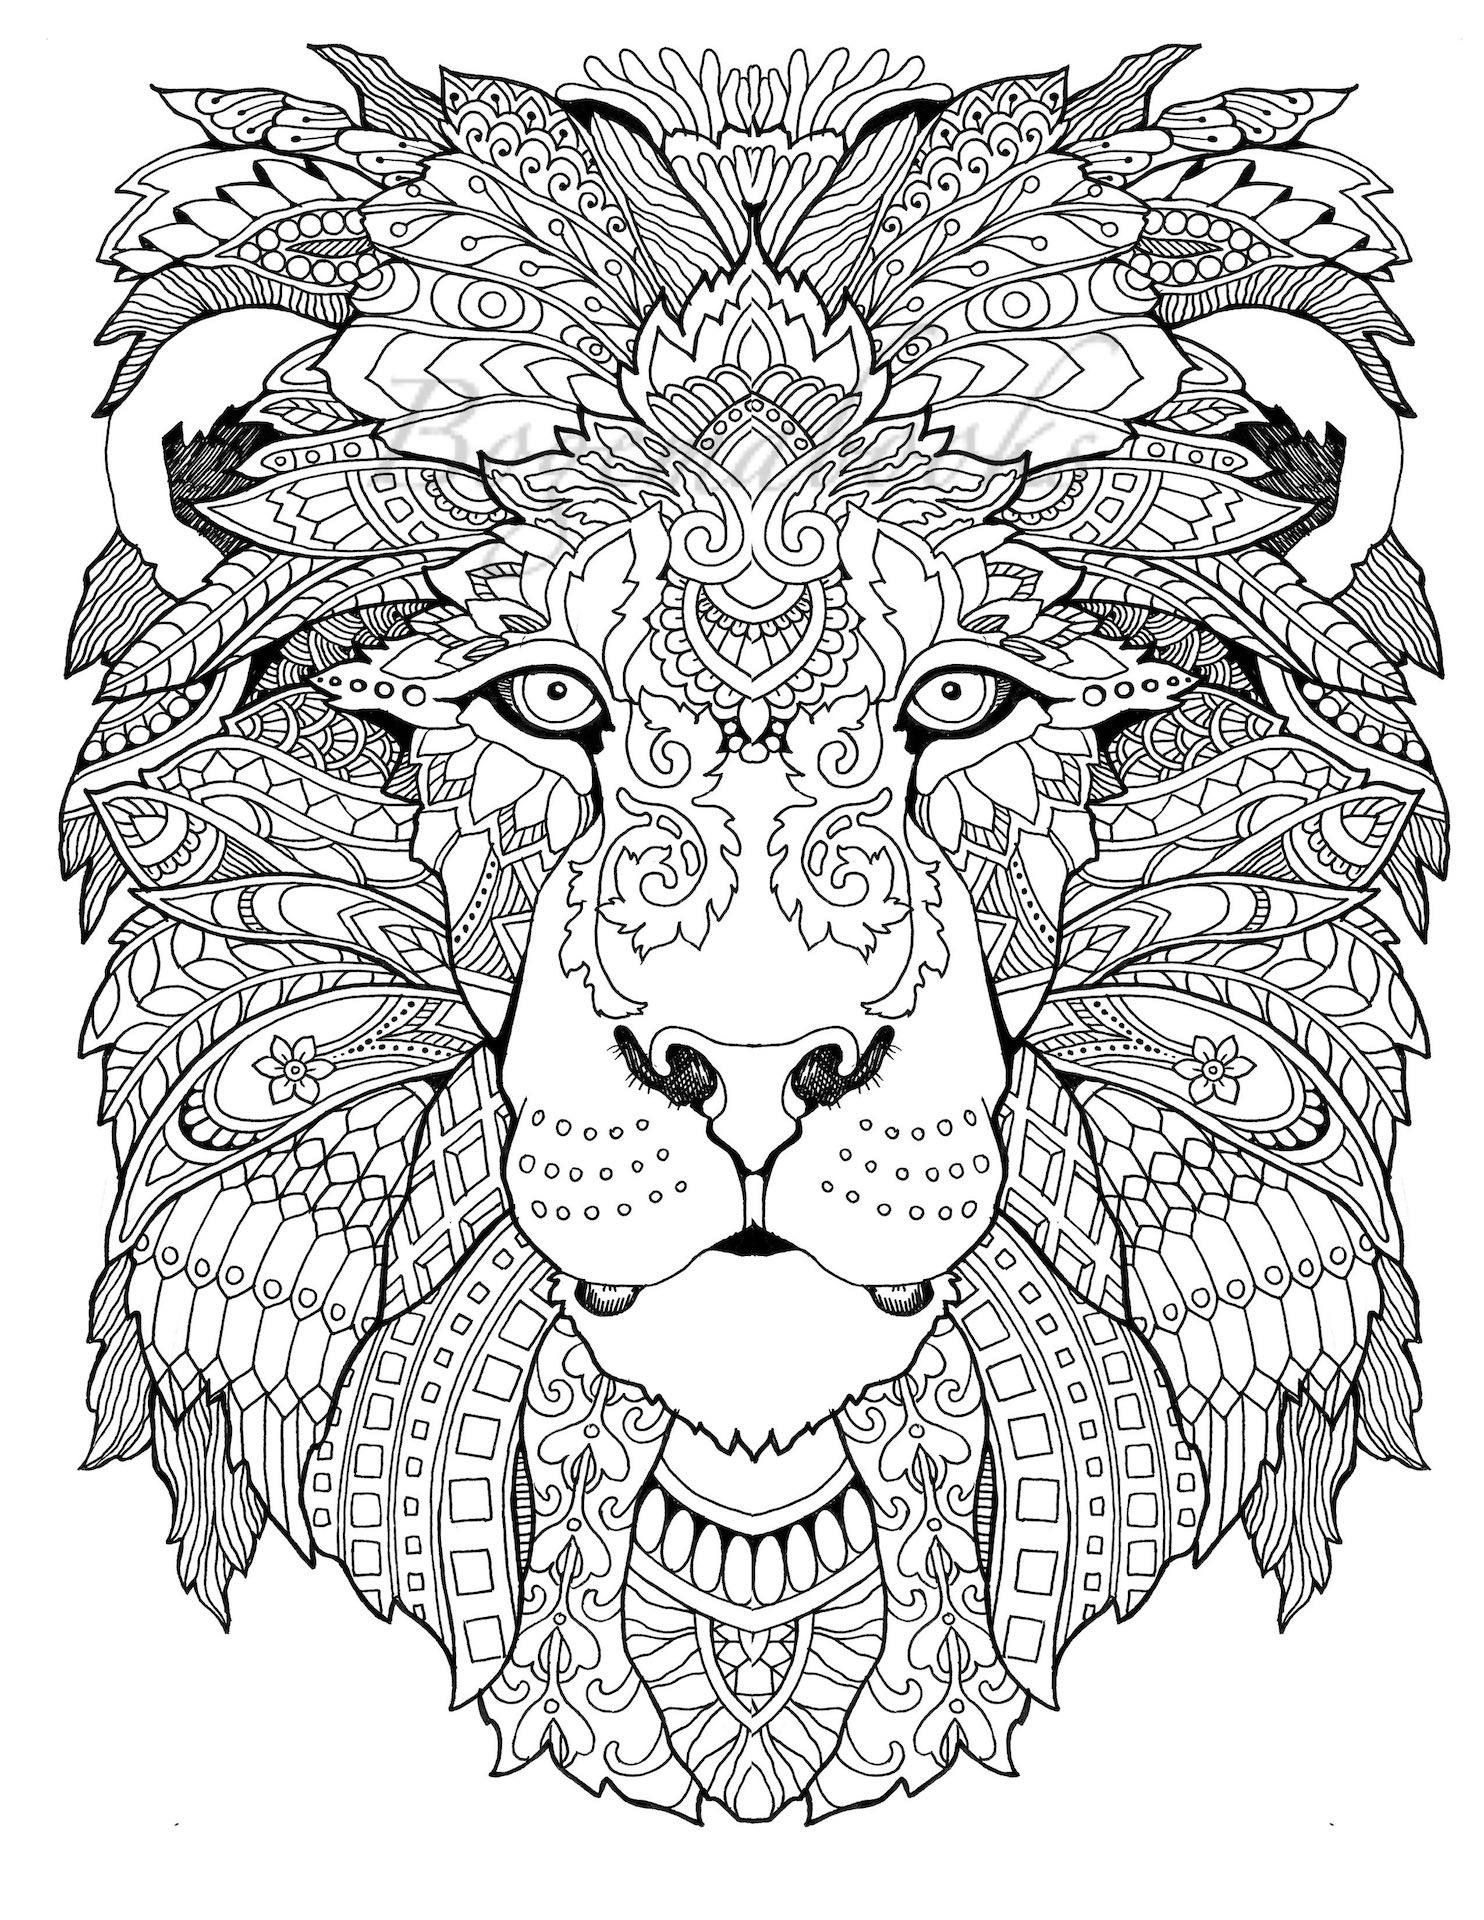 Awesome Animals Adult Coloring Book Coloring Pages Pdf Awesome